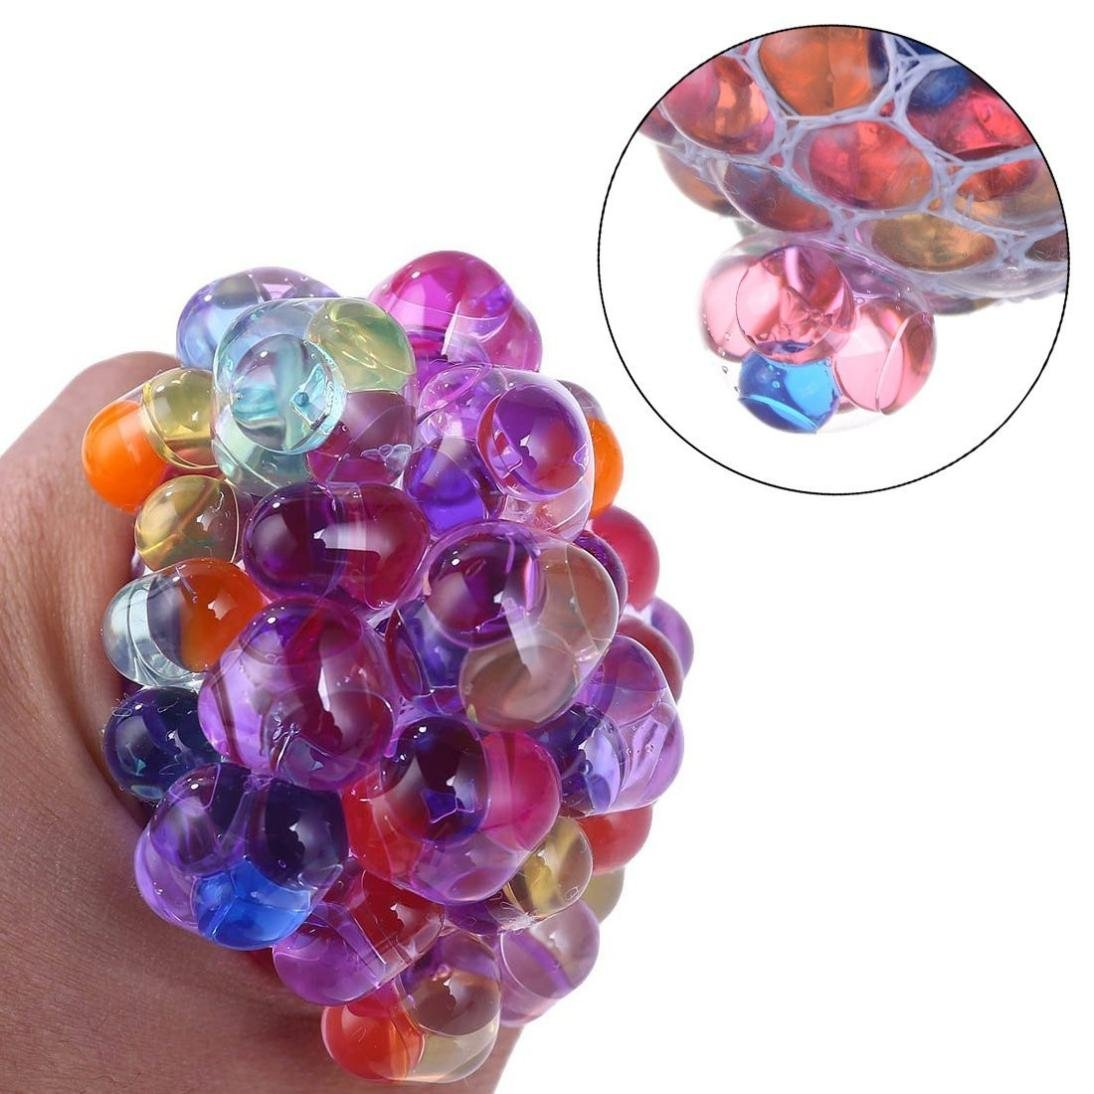 Dacawin Mesh Ball Stress LED Glowing Squeeze Grape Toys Anxiety Relief Stress Ball (Multicolor)